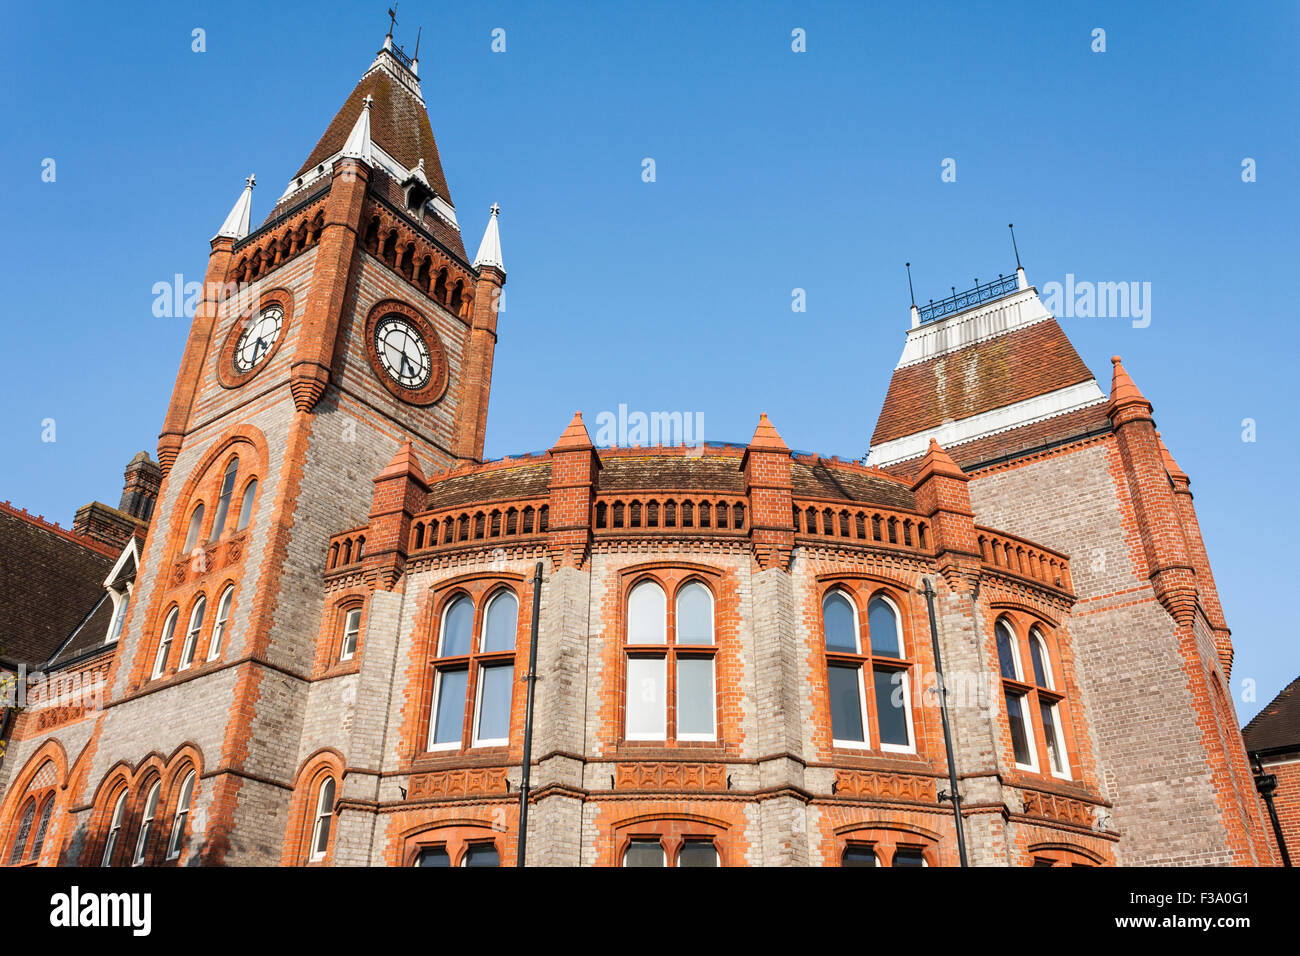 Reading Town Hall, Reading, Berkshire, England, GB, UK. - Stock Image